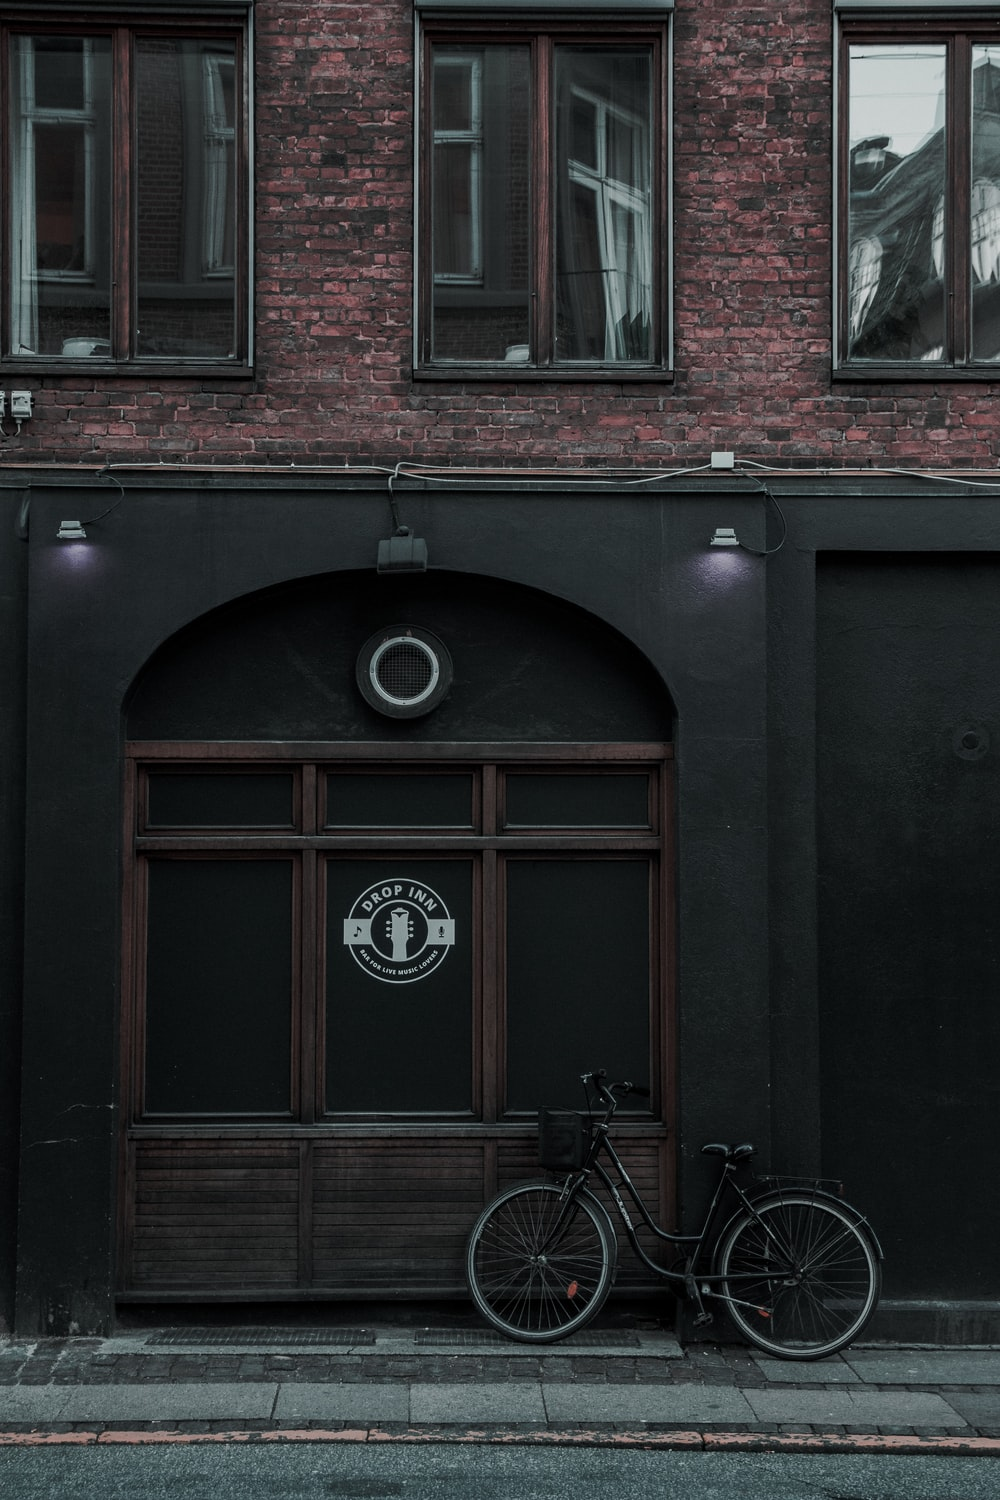 black city bike parked beside building during daytime